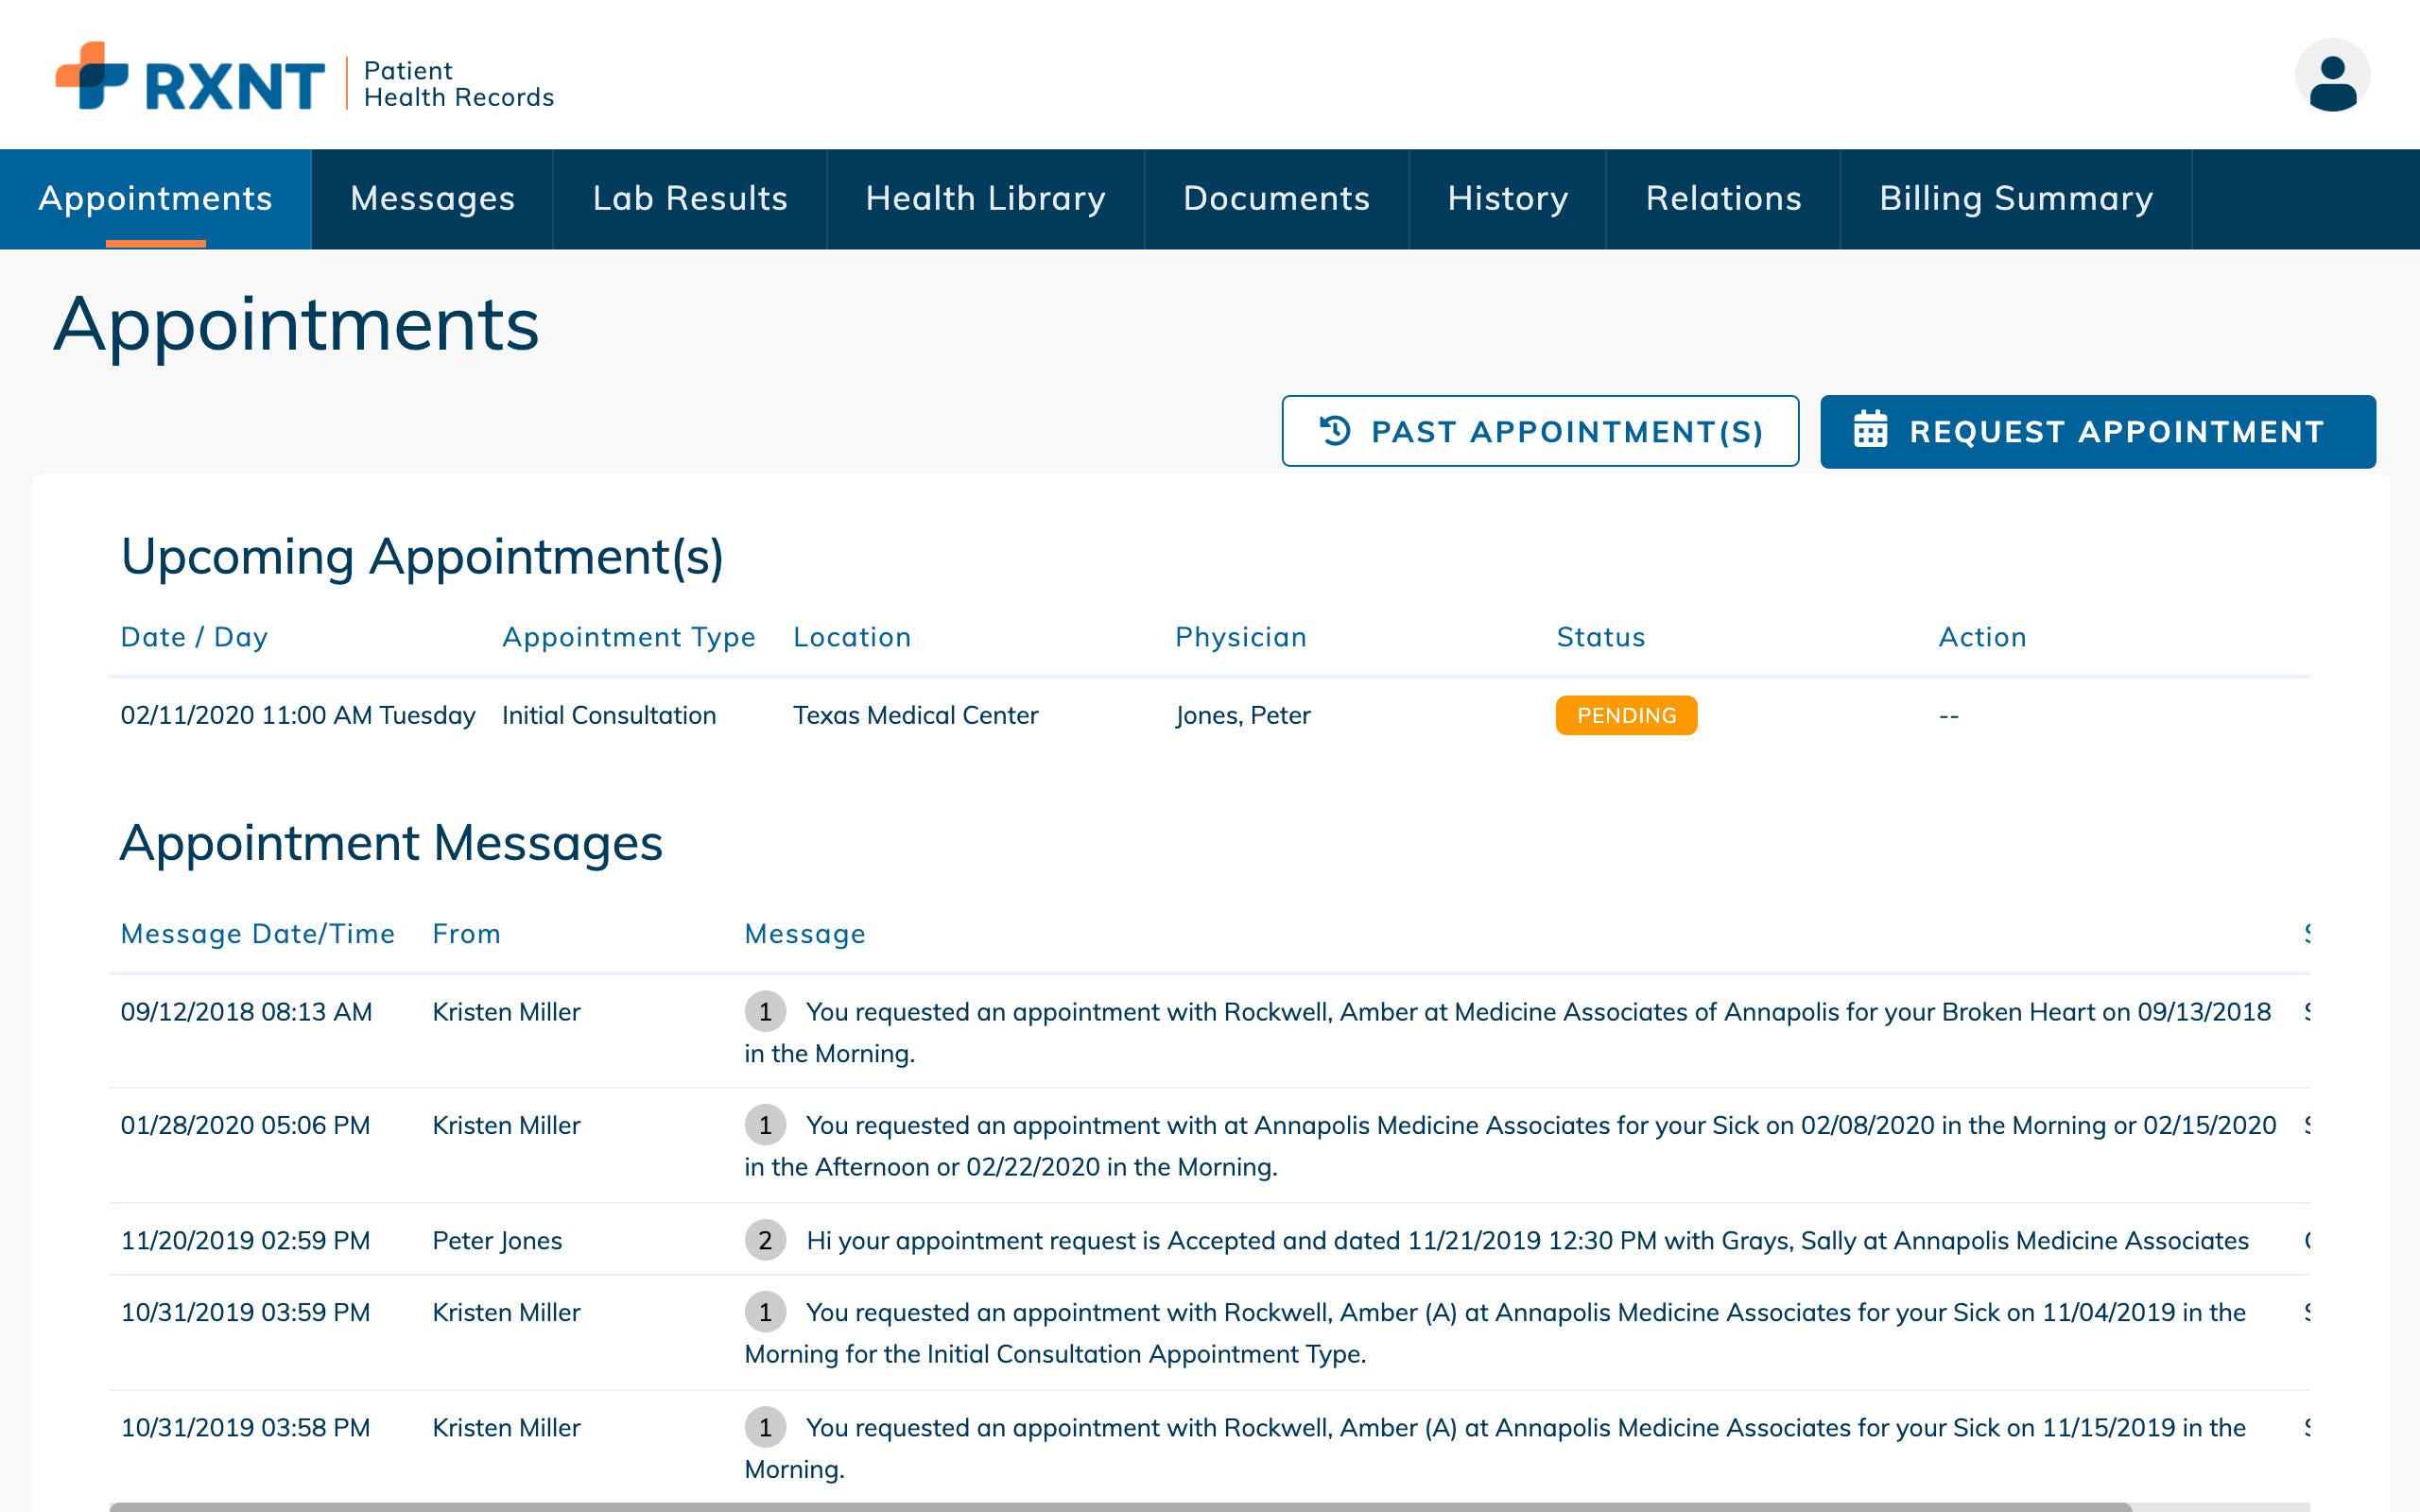 RXNT Software - RXNT Electronic Health Records – PHR Appointments. Schedule and manage upcoming appointments and see past secure appointment messages.